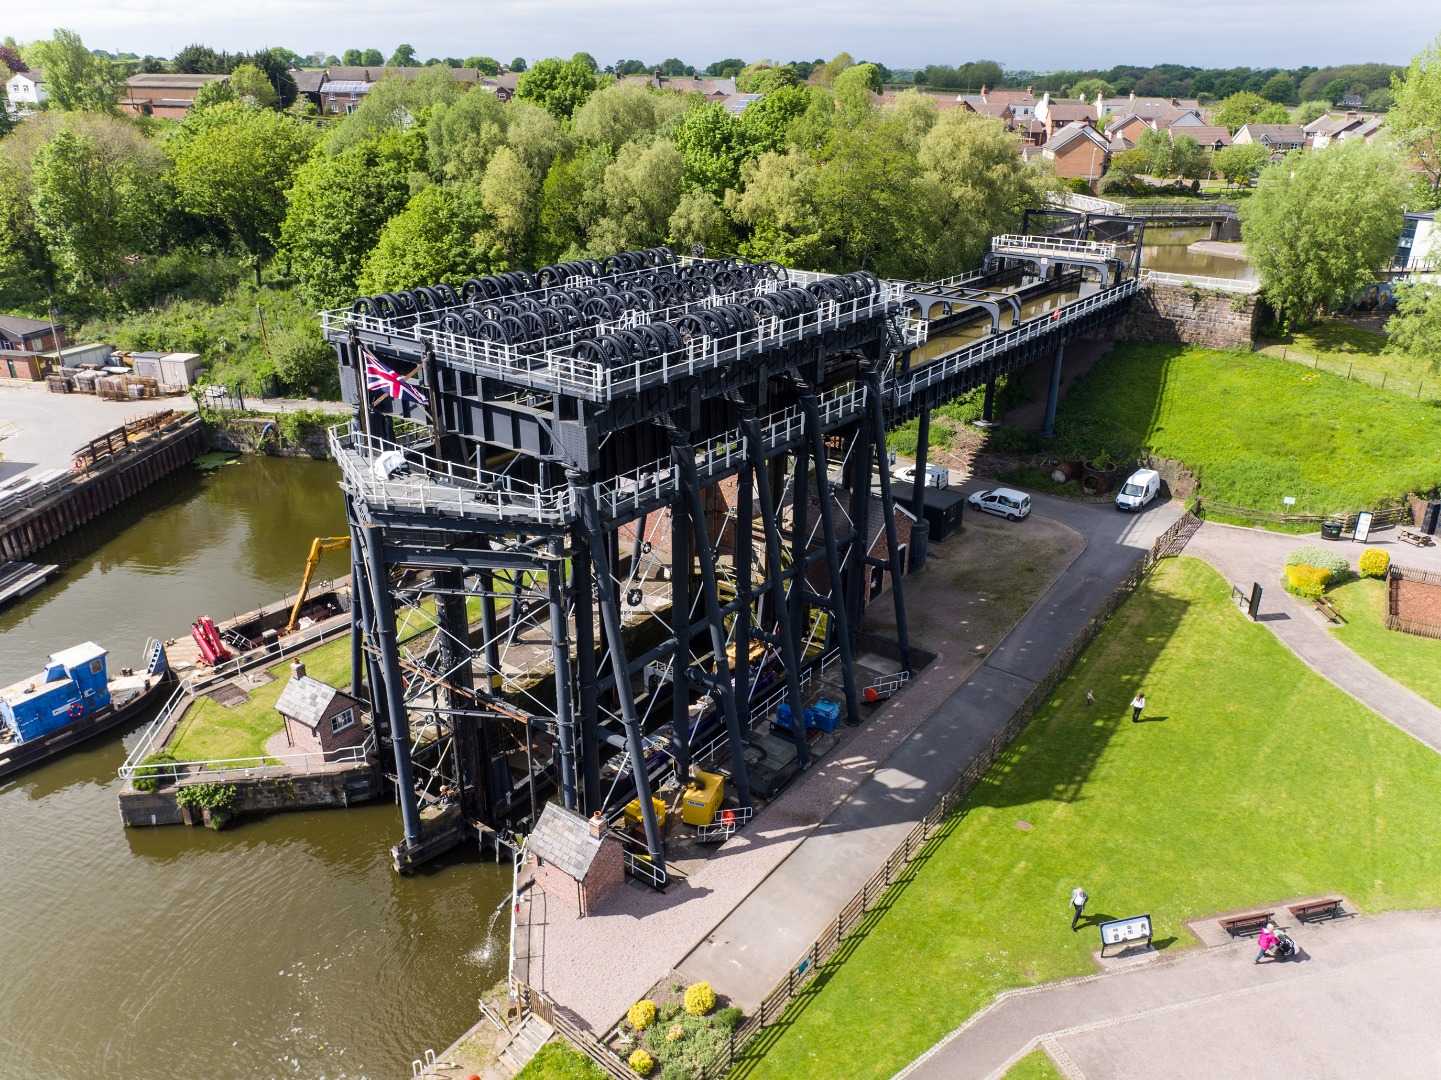 Cheshire's iconic Anderton Boat Lift holds free Steam Festival